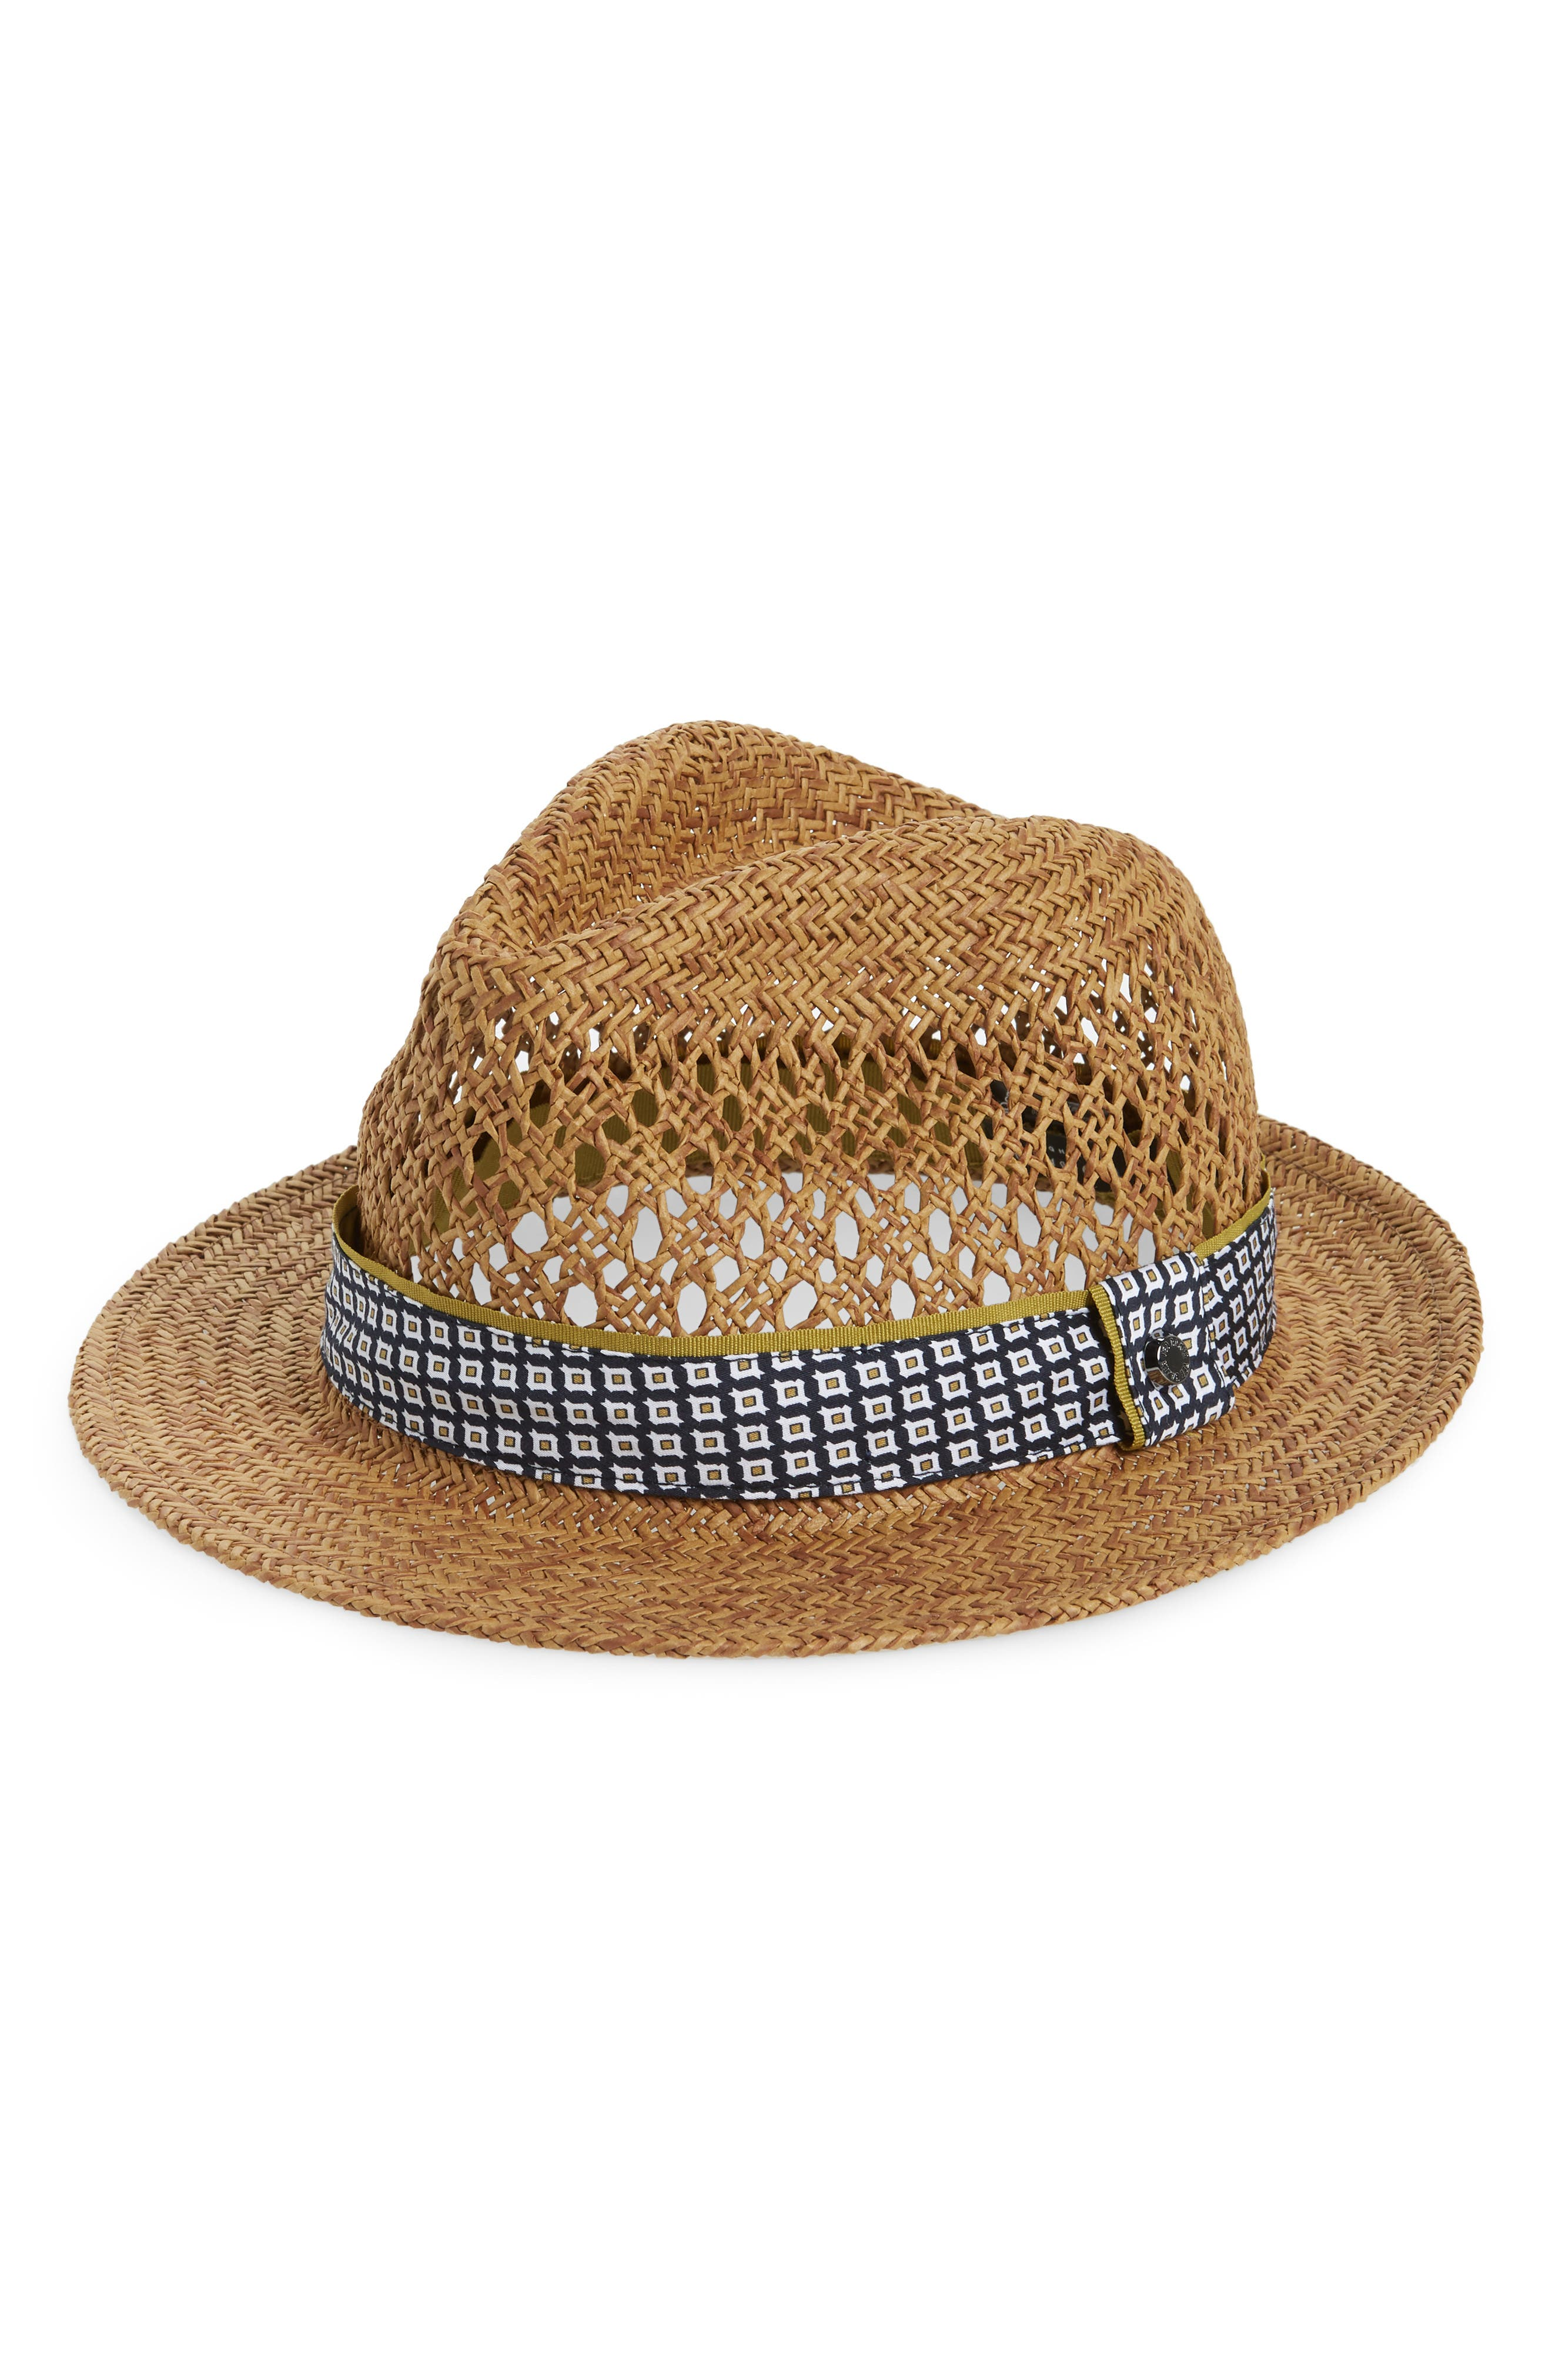 Harlow Straw Hat,                         Main,                         color, 250